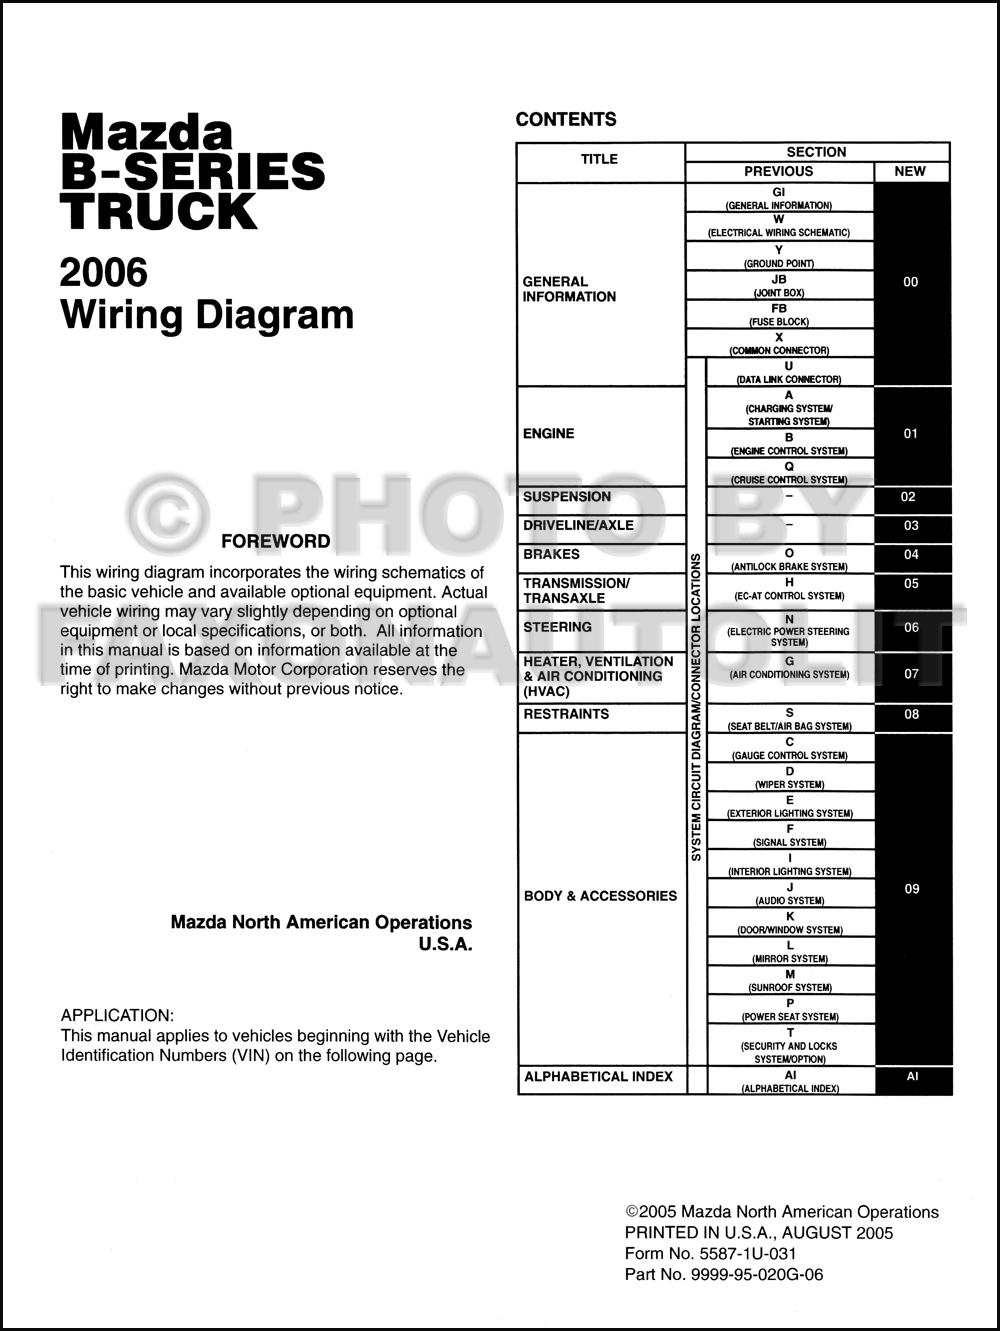 2001 mazda tribute wiring diagram 2006 mazda b-series pickup truck wiring diagram manual ... mazda tribute wiring diagram pdf